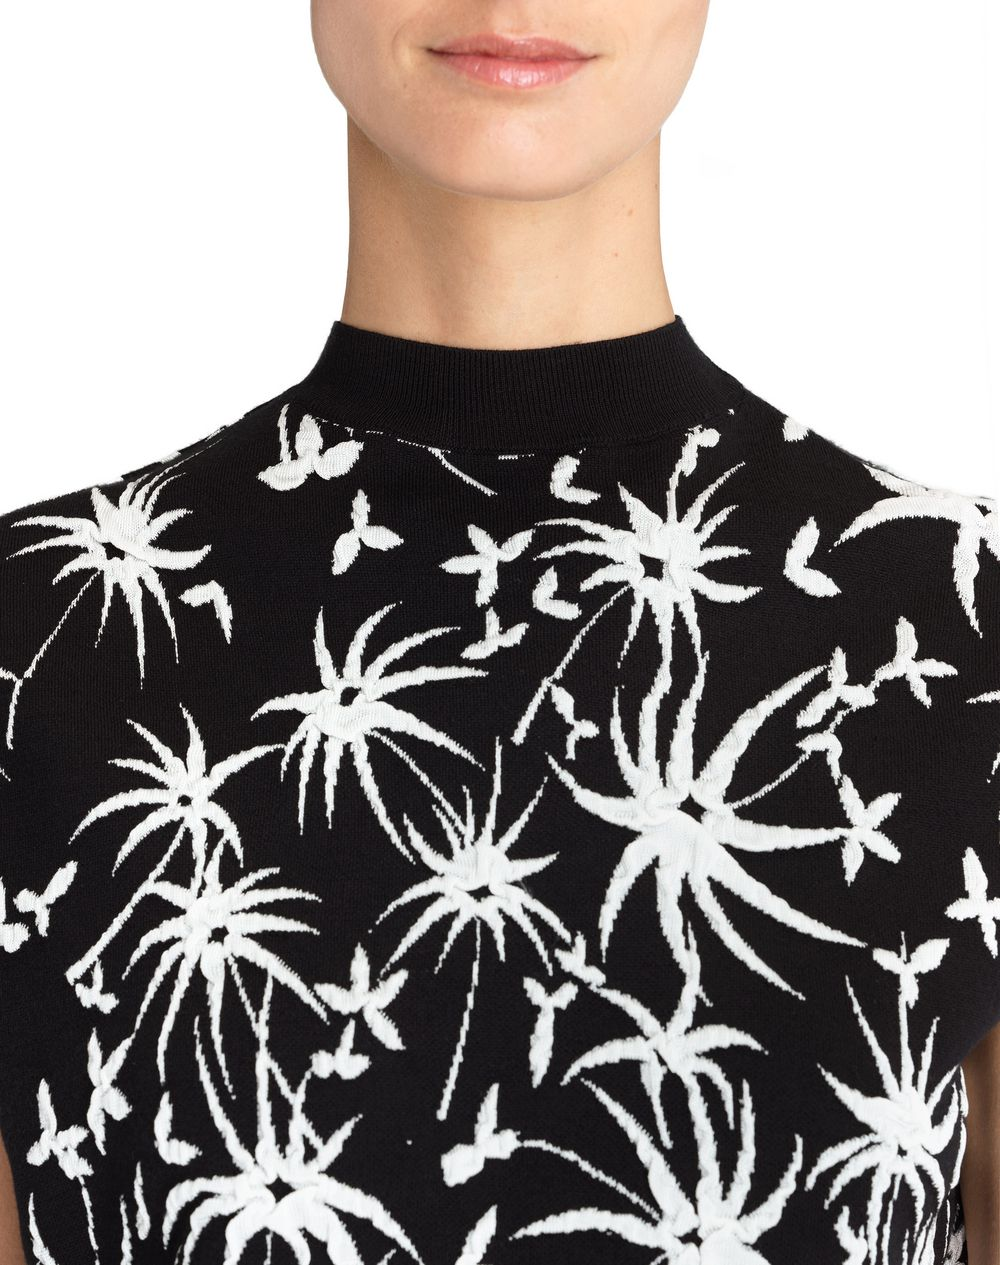 GRAPHIC JACQUARD SWEATER - Lanvin